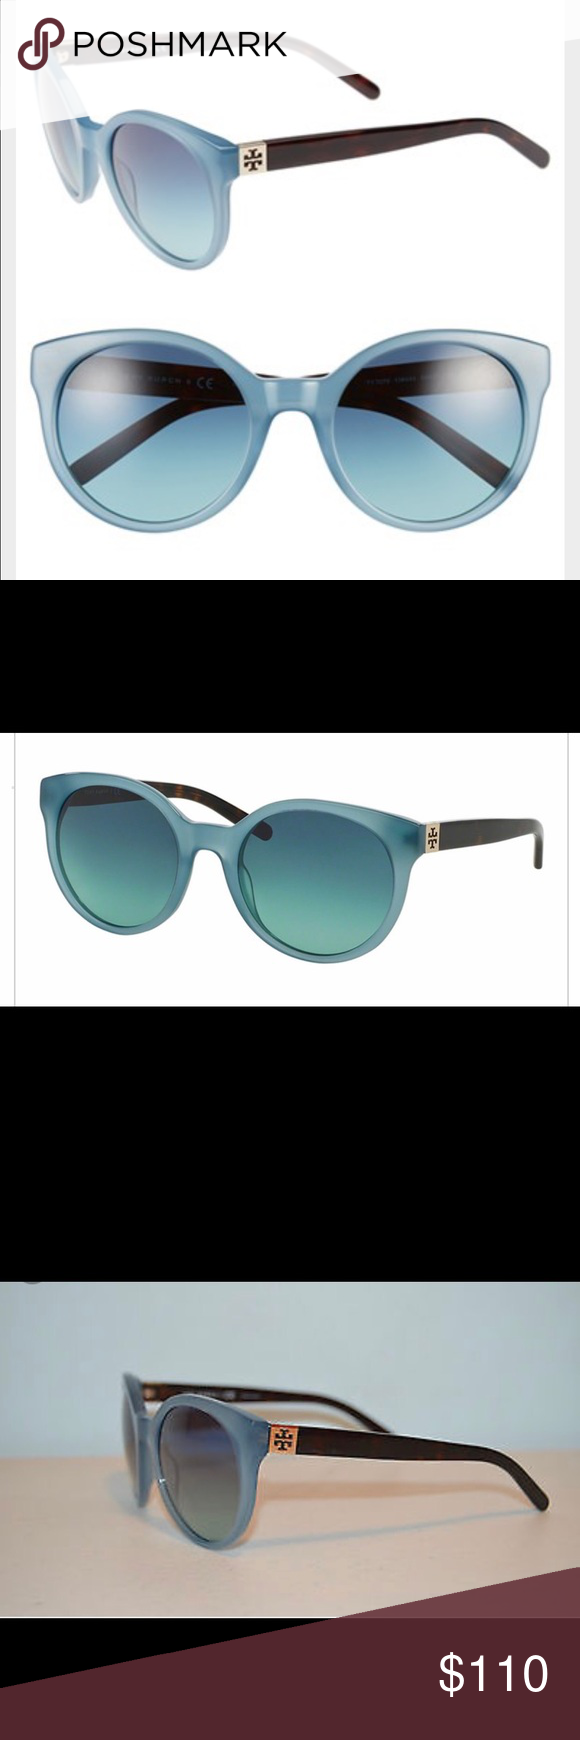 NWT💙Tory Burch💙Sunnies NWT💙Tory Burch💙Sunnies purchased from Sak's. Gorgeous color blue frames with tortoise shell arms! Still new in stores! Please check out my other listings and ratings as both are PHENOMENAL 🌈💙😍 (I will be posting pics of the actual pair soon-I just placed the shipment and haven't received them quite yet!) Tory Burch Accessories Sunglasses